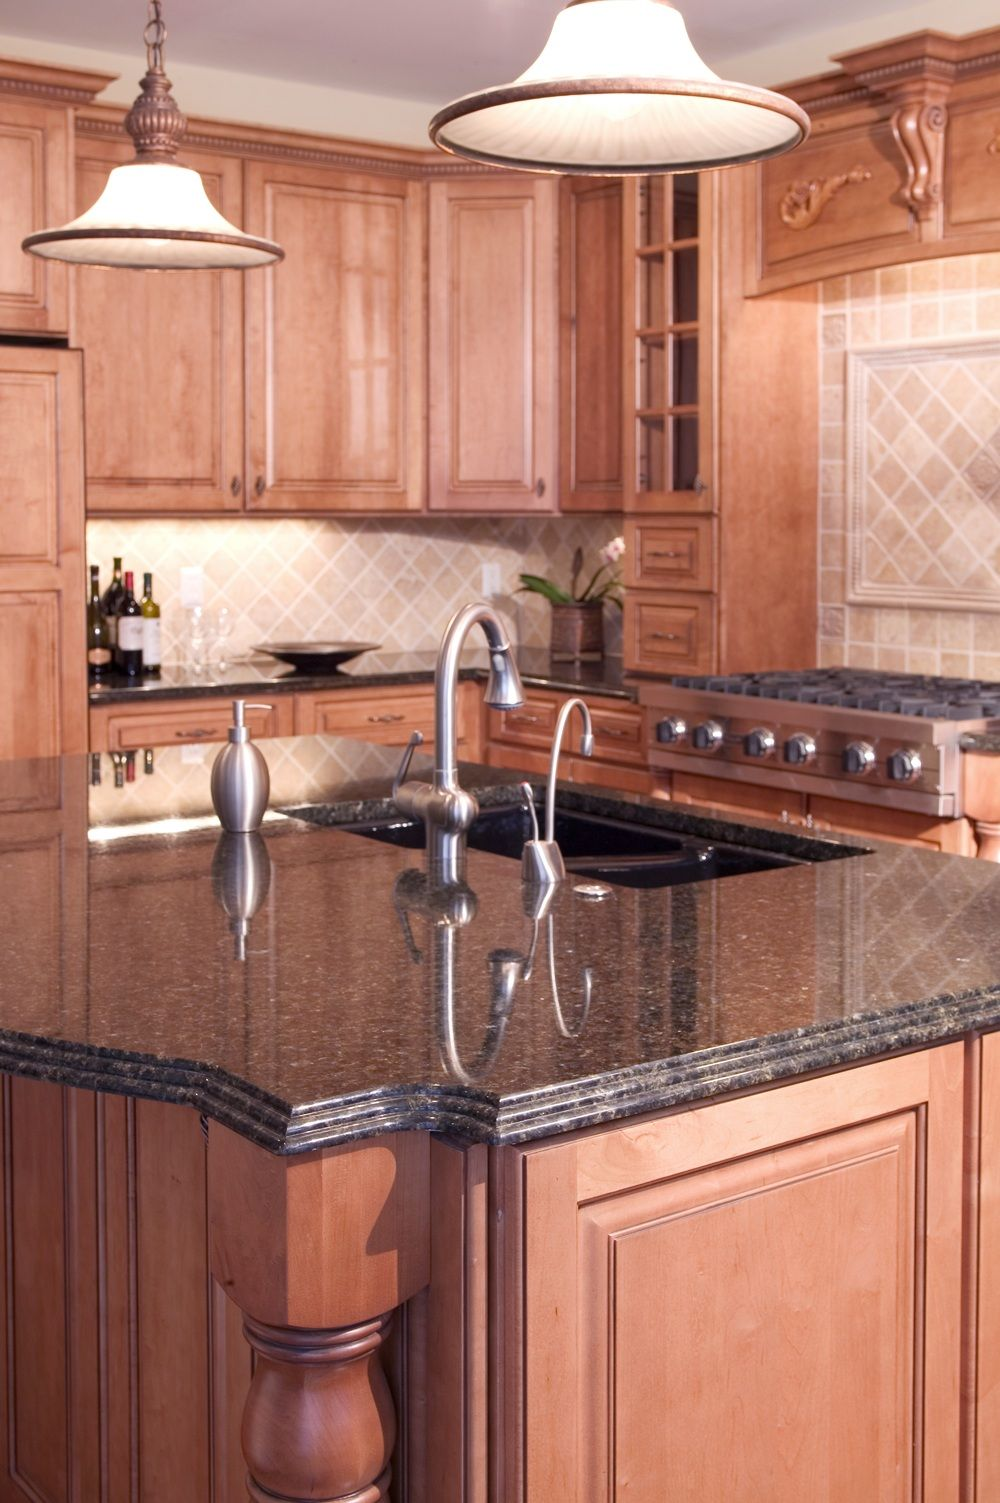 Granite Kitchen Countertops Colors Black Granite Countertops In A Classic Wooden Kitchen With Kitchen